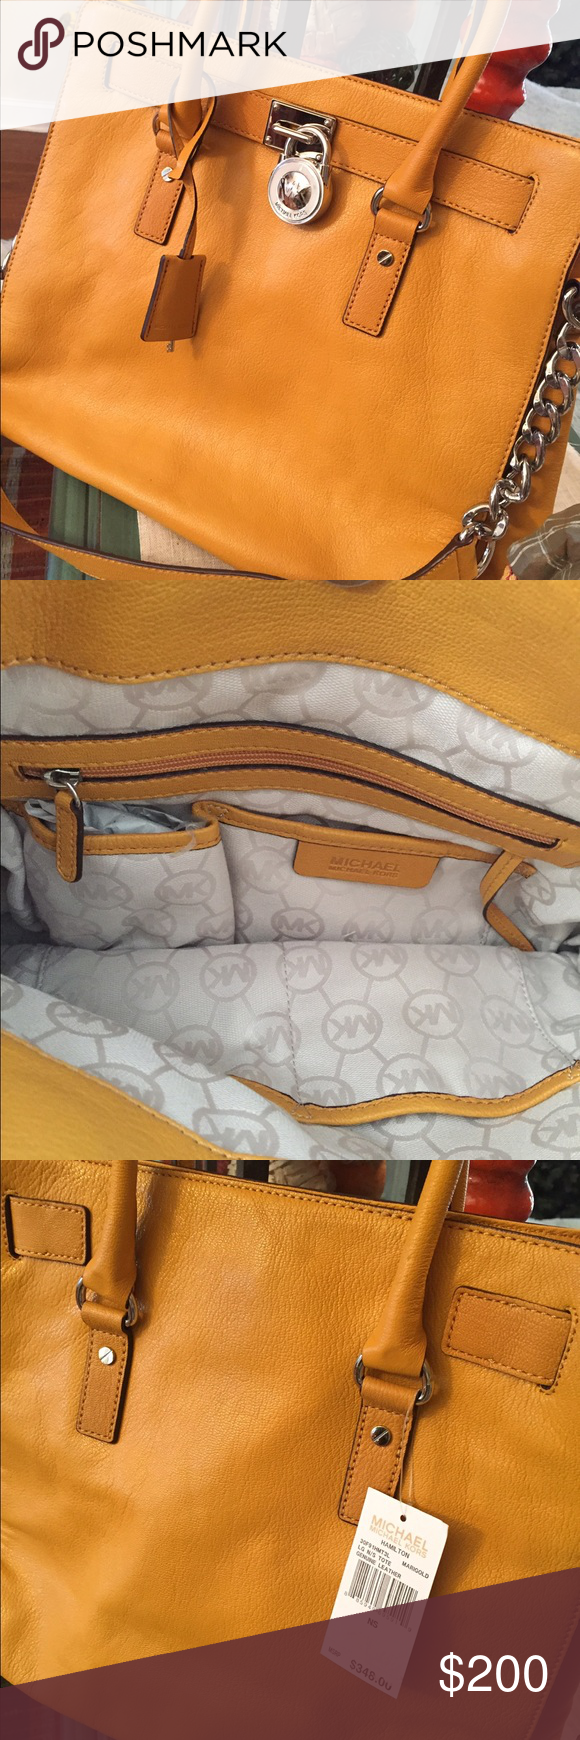 Authentic MICHAEL Kors Mustard Marigold Hamilton💛 Authentic MICHAEL Kors Leather Mustard Marigold Large Hamilton!! New with Tags!! Gorgeous bag! Silver accents. Sold out in stores! 💛 Michael Kors Bags Totes